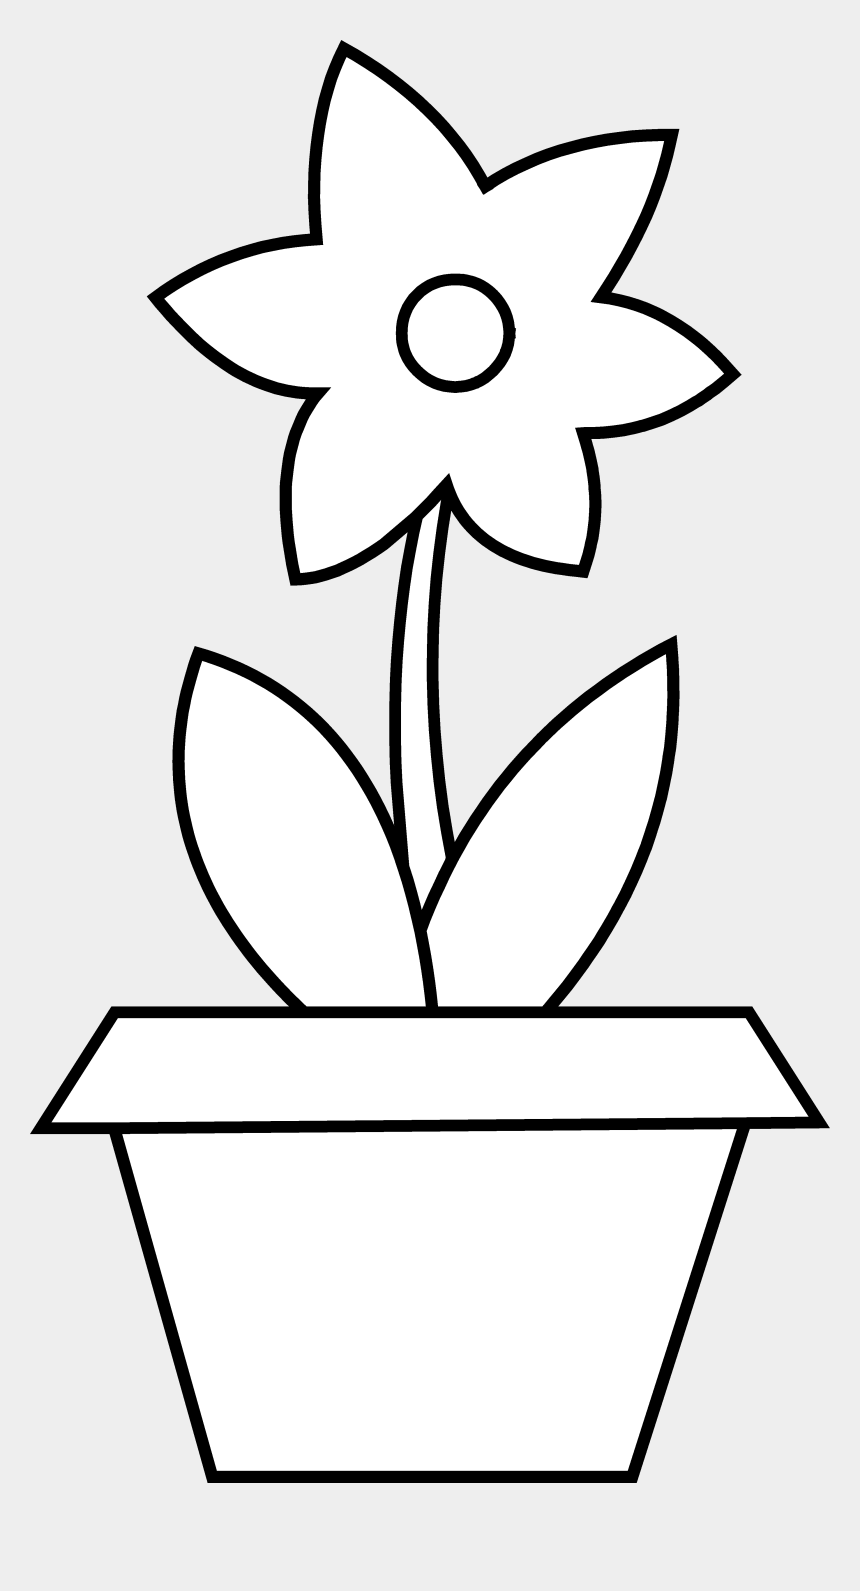 flowers clipart black and white, Cartoons - Flowers For Black And White Flower Pot Clipart - Flower Pot Outlines